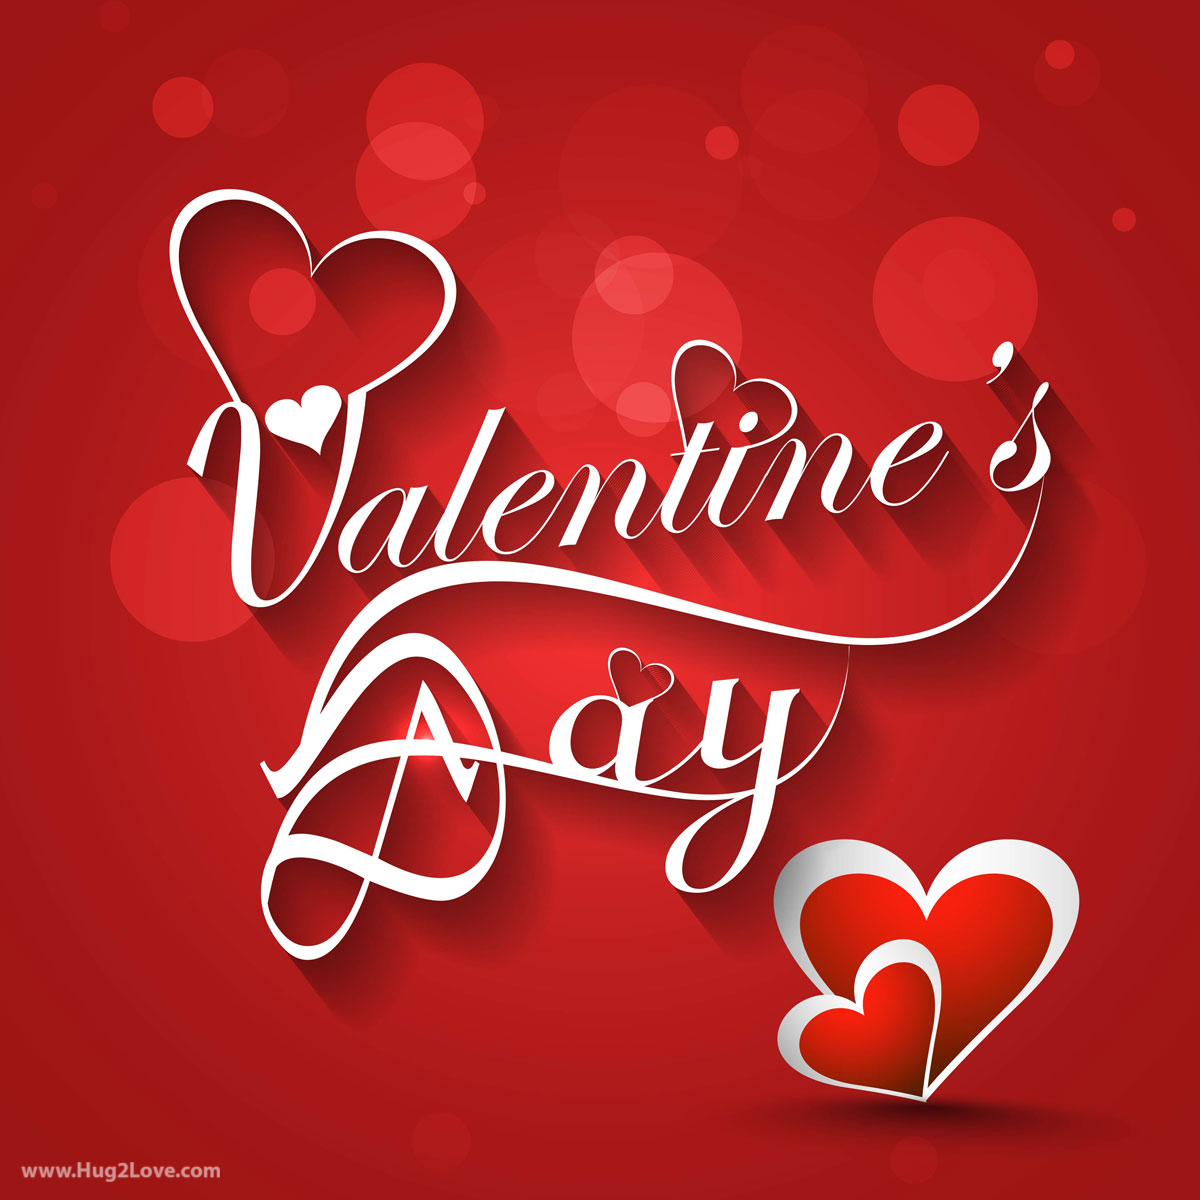 100 Happy Valentines Day Images Amp Wallpapers 2019